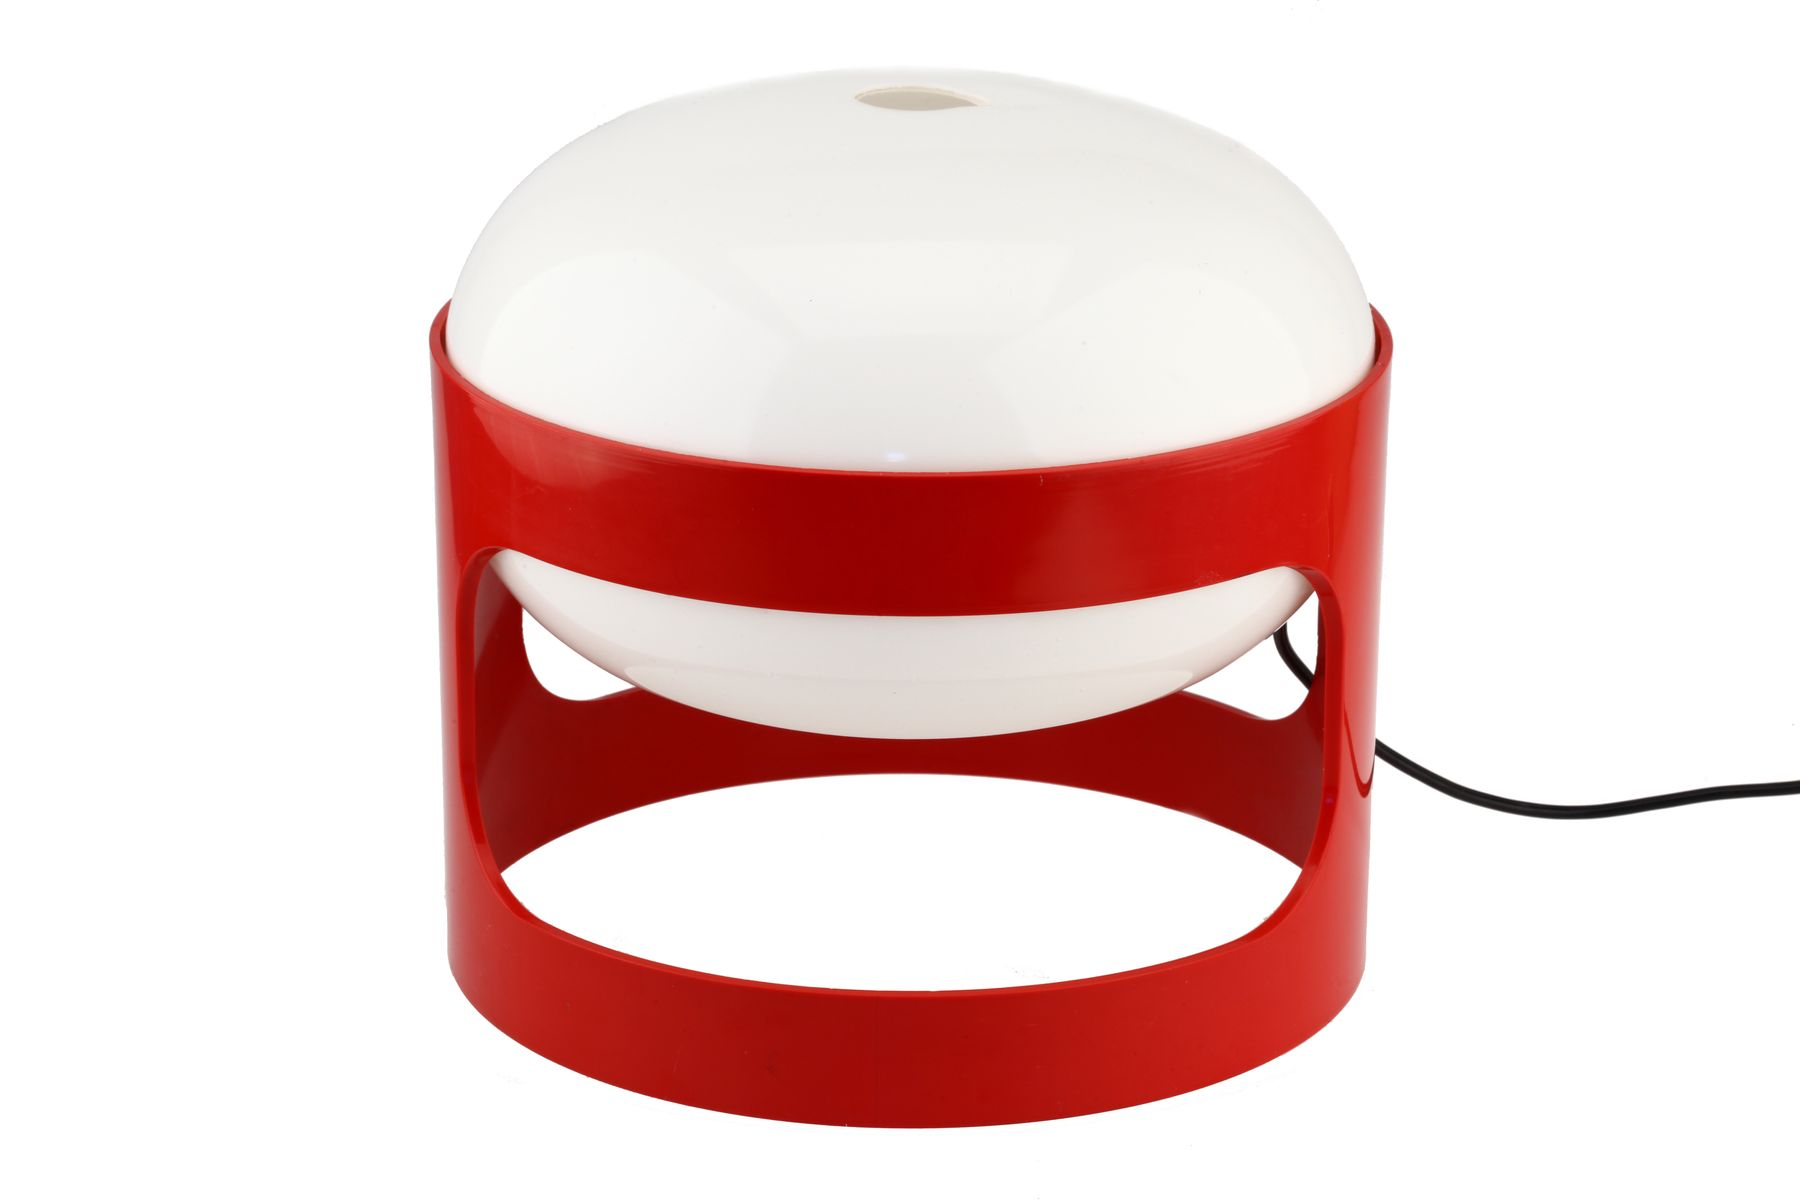 lampe de bureau vintage kd27 space age en plastique rouge de joe colombo pour kartell en vente. Black Bedroom Furniture Sets. Home Design Ideas